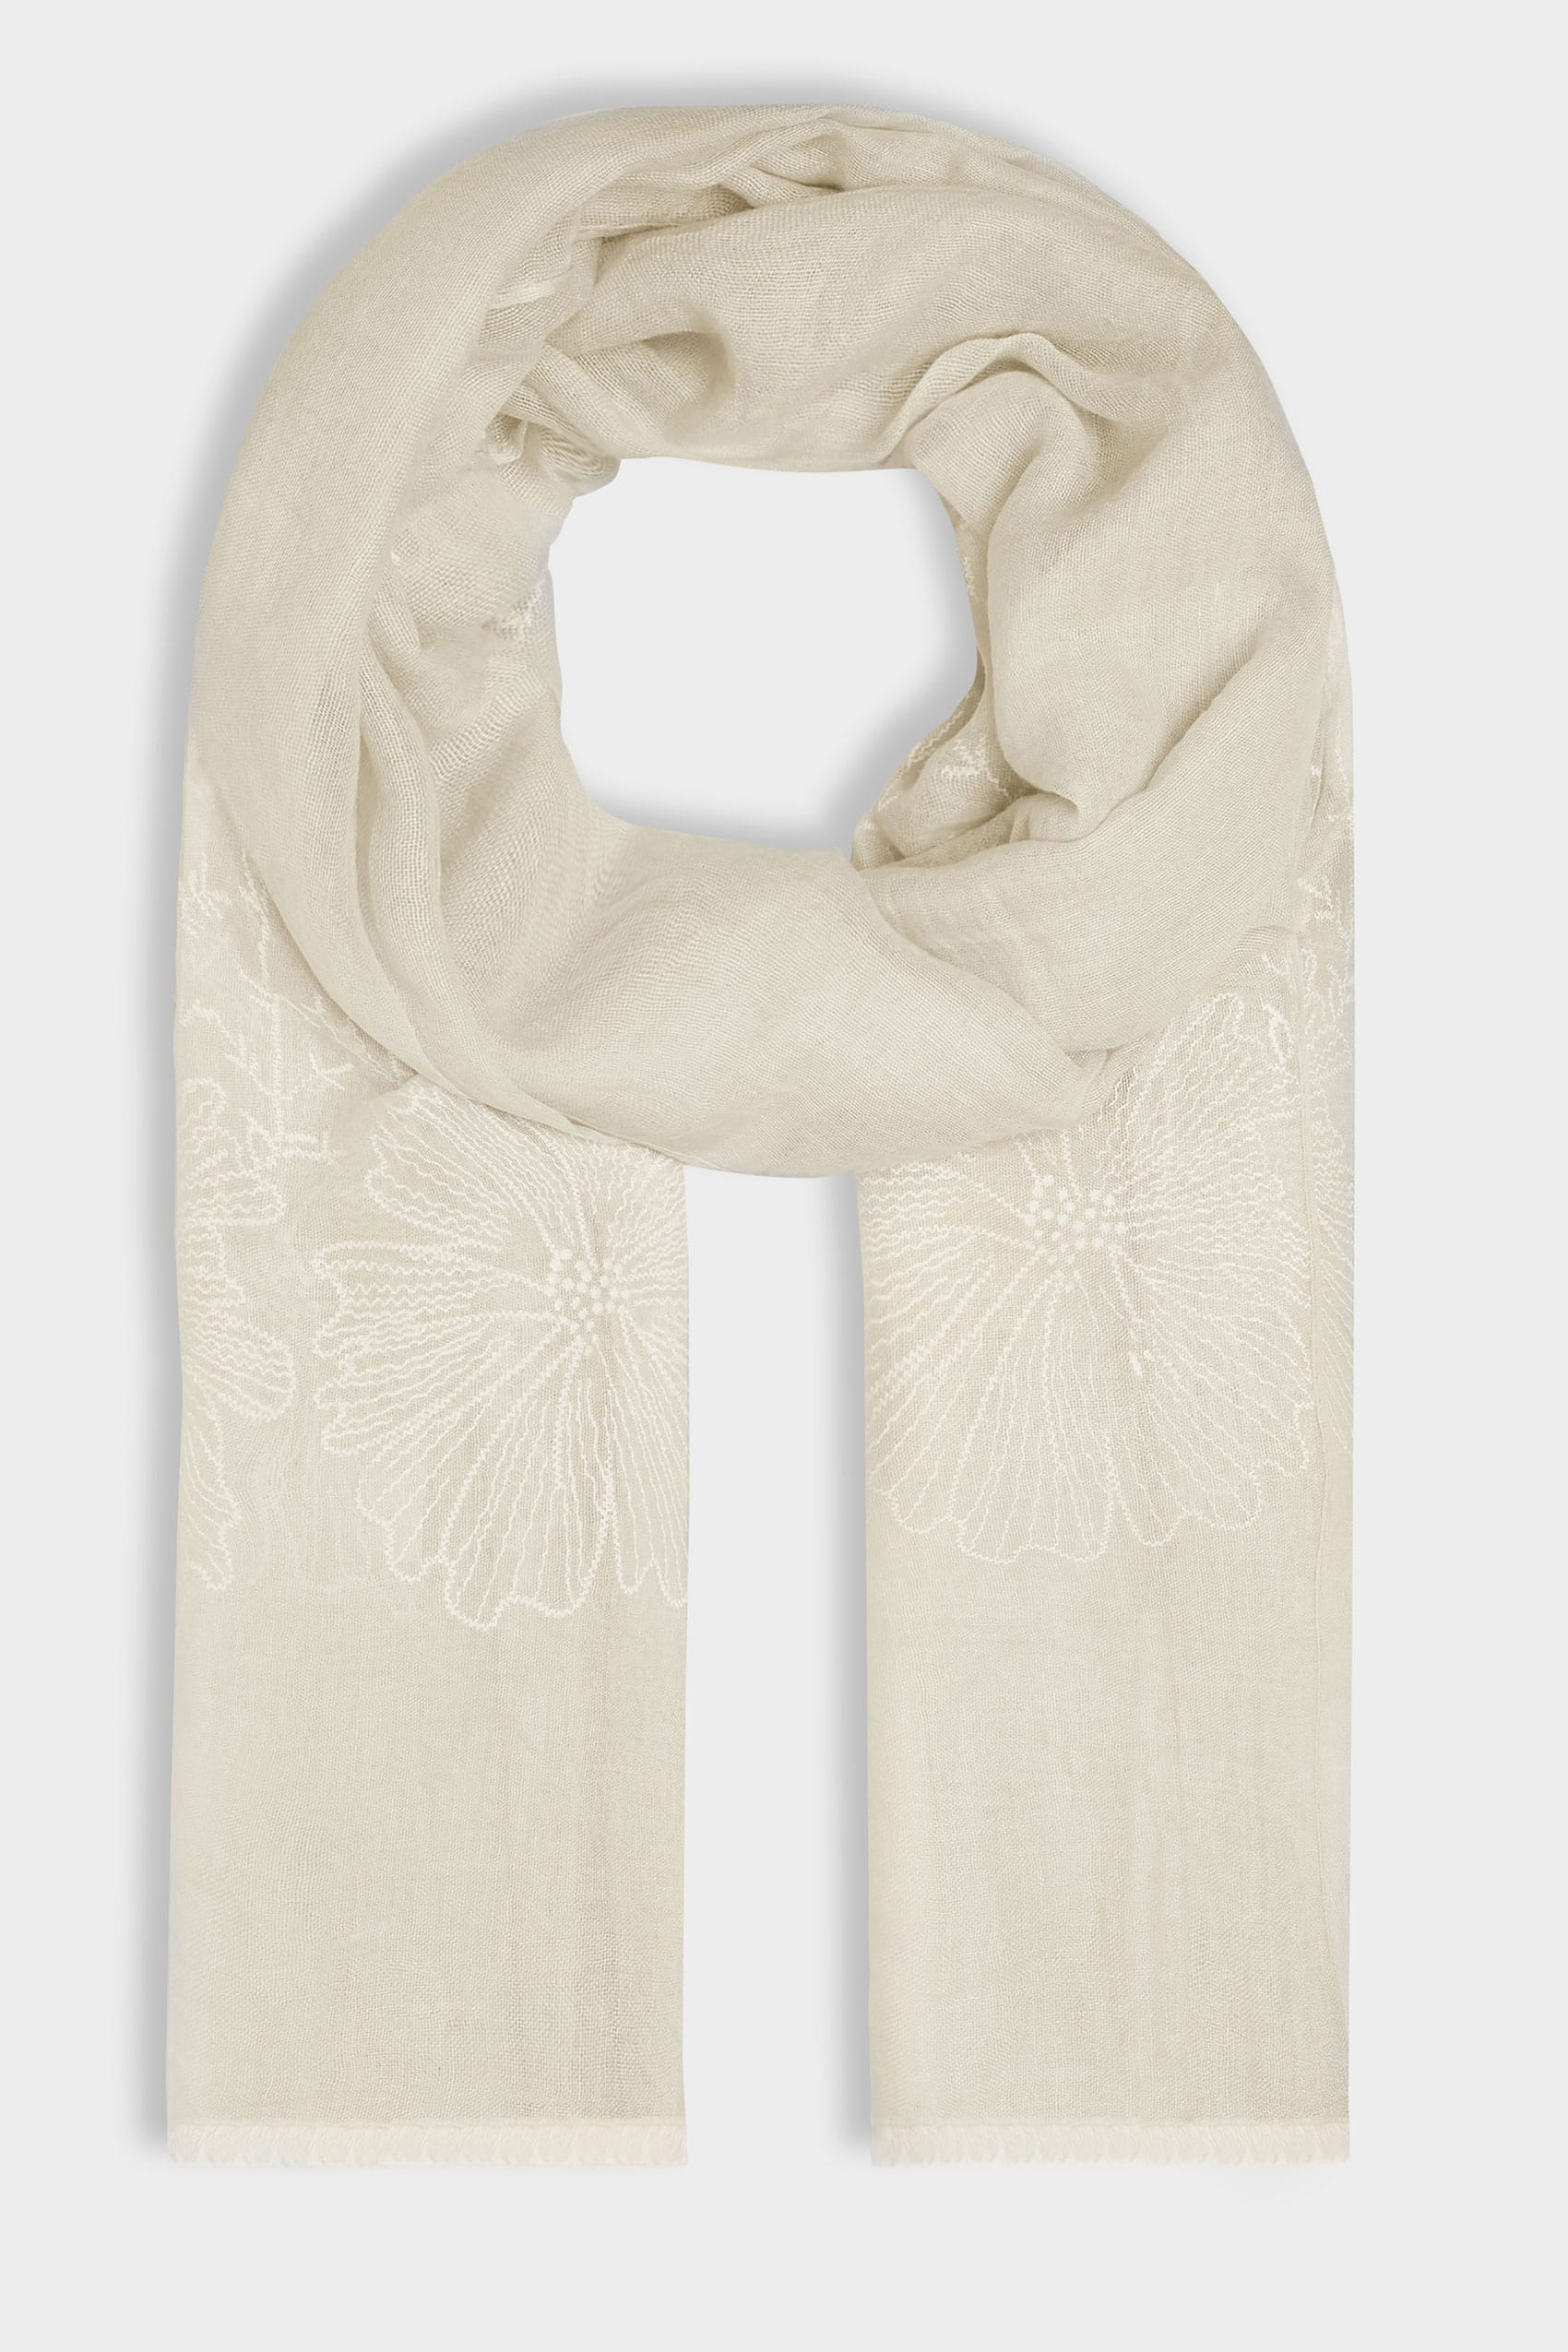 Beige floral embroidered scarf for Buy here pay later